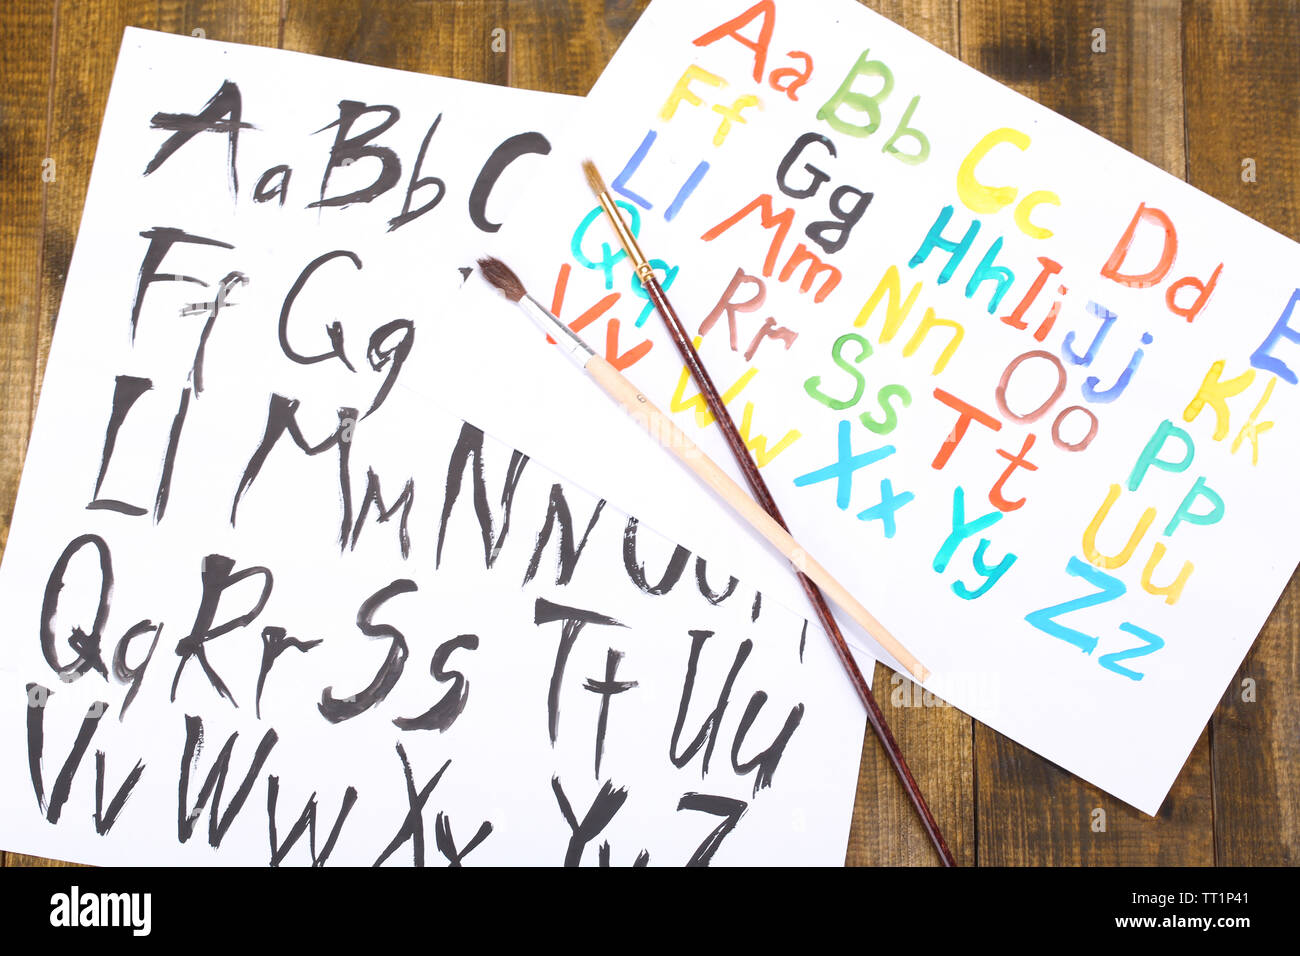 Graffiti Font Alphabet Stock Photos & Graffiti Font Alphabet